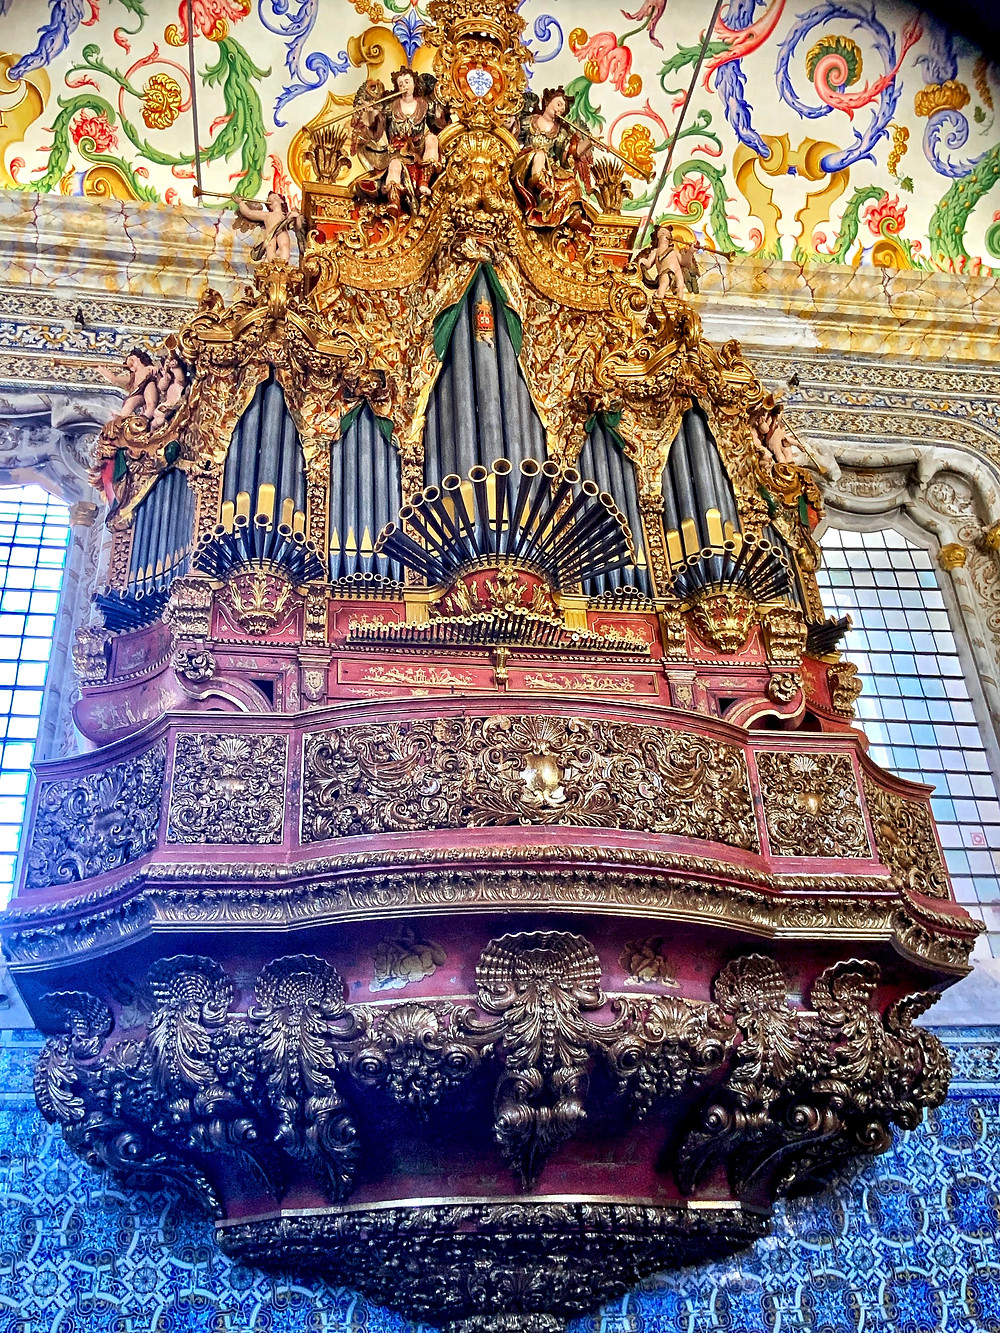 the massive organ with 2,000 pipes